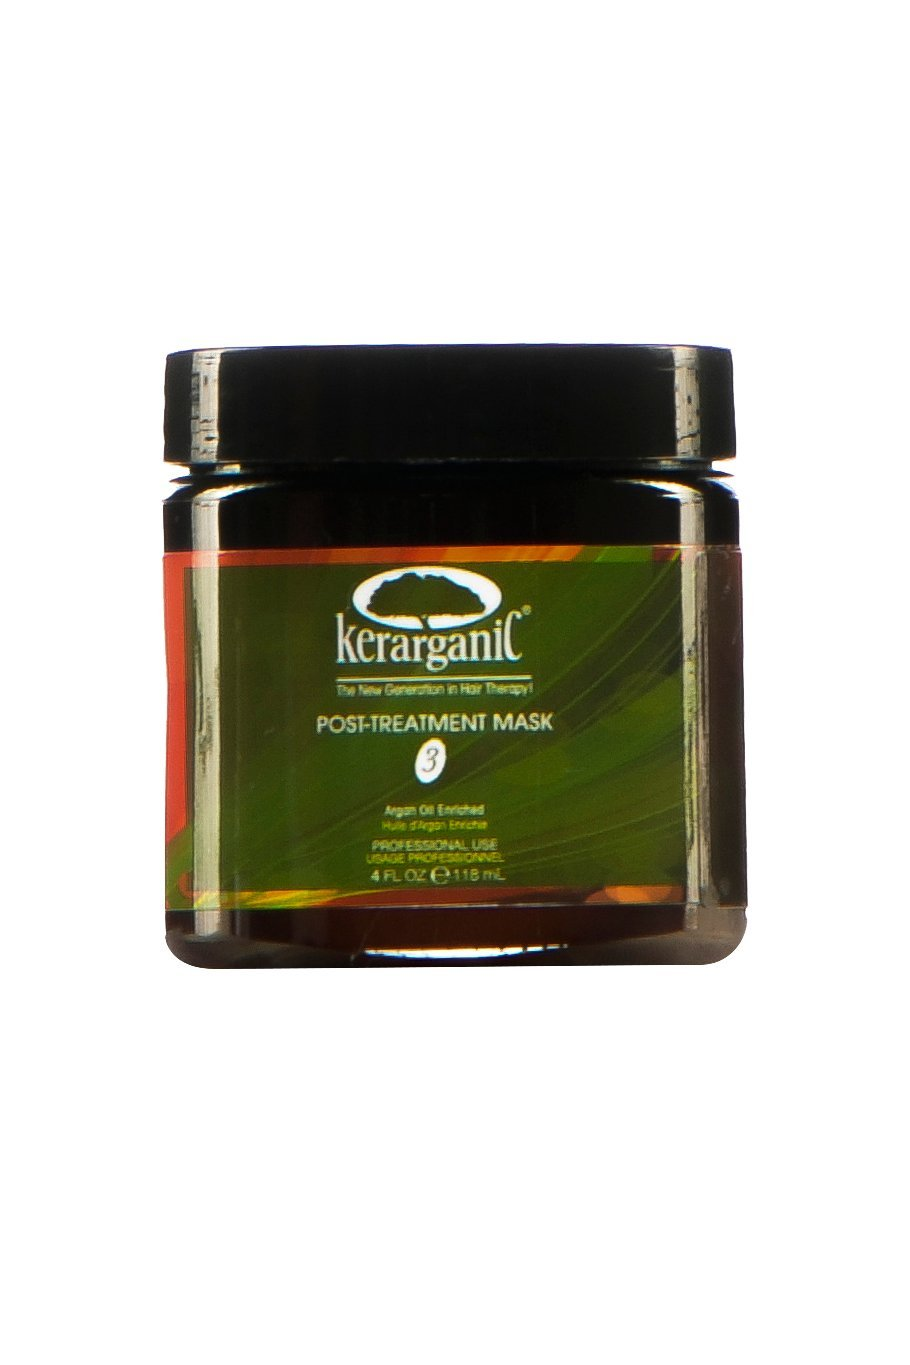 ORGANIC KERATIN TREATMENT - POST-TREATMENT MASK - 4oz by KERARGANIC